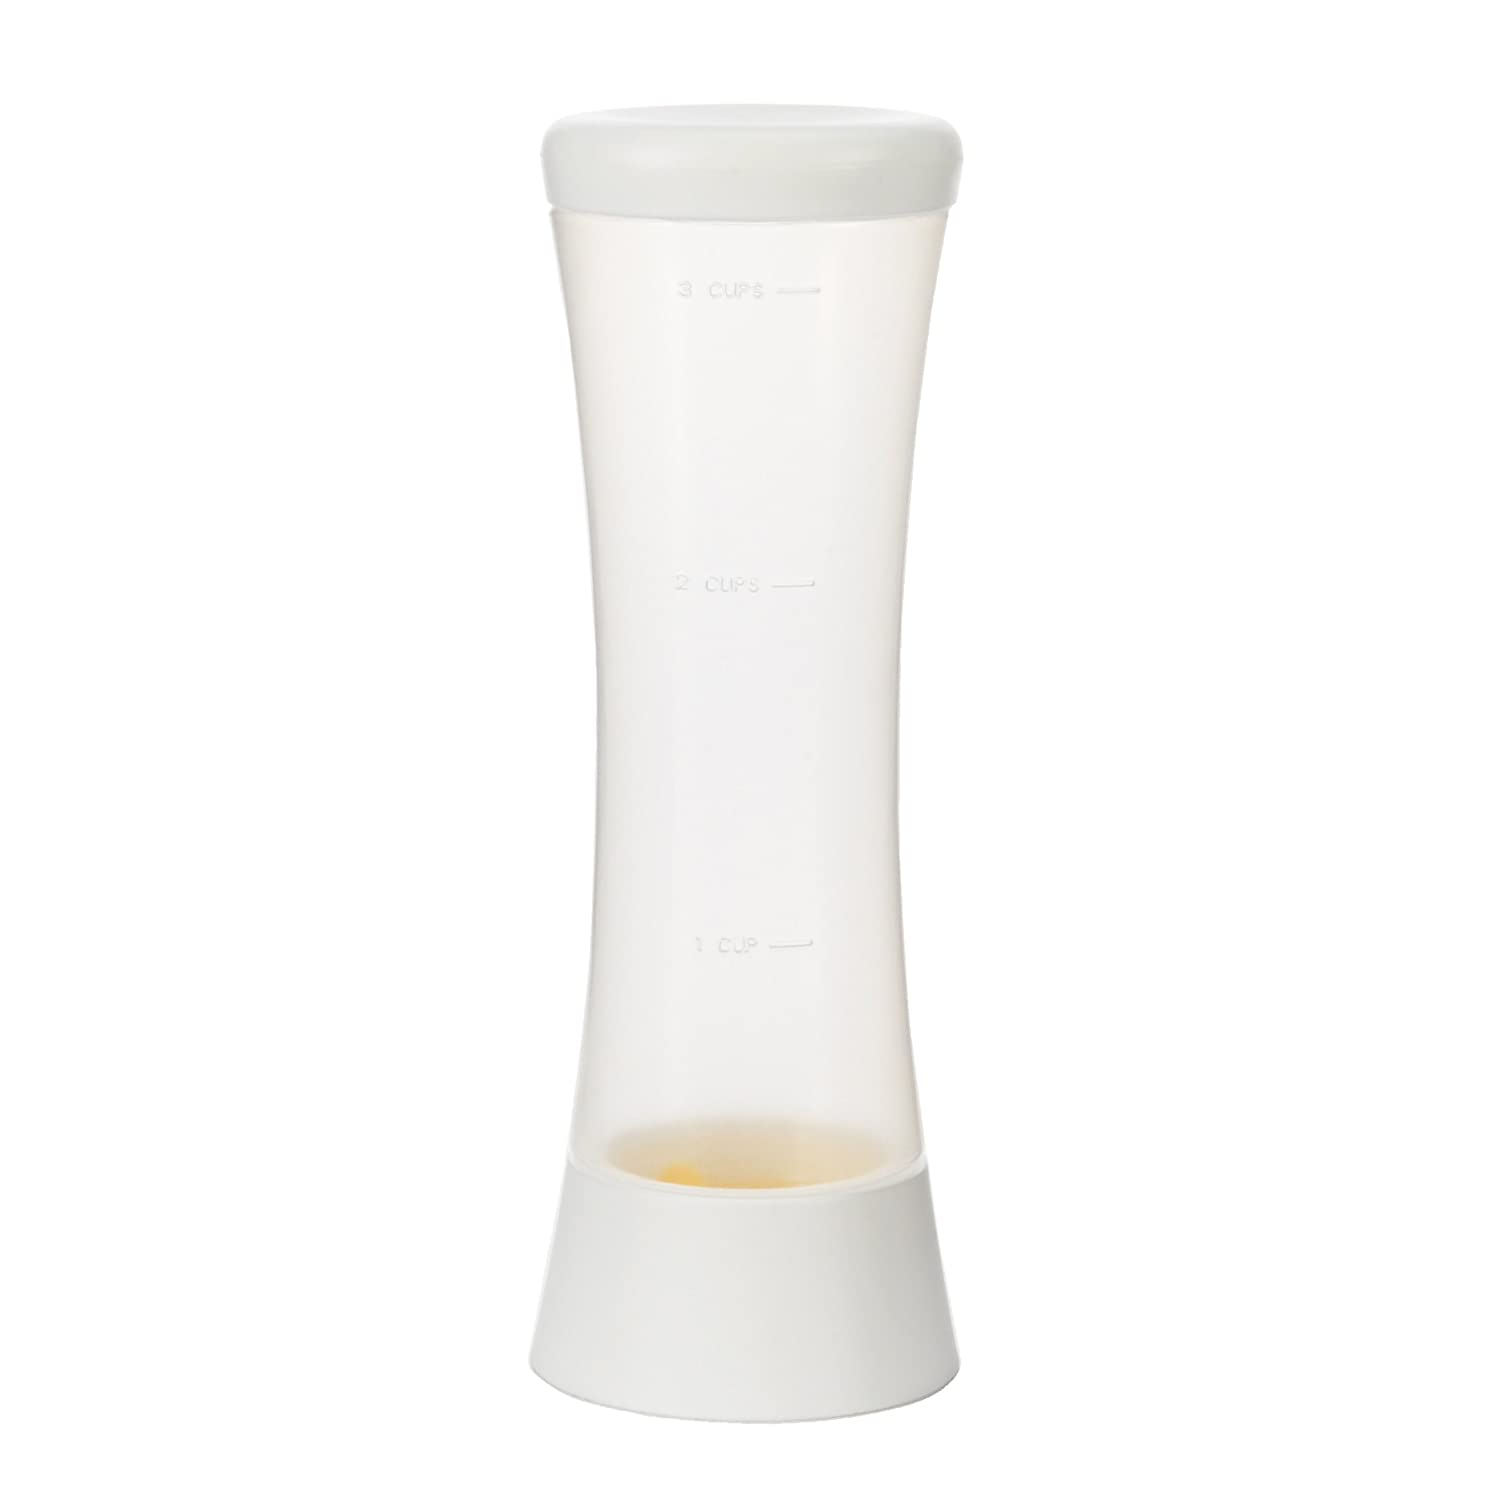 OXO Good Grips Batter Dispenser - White 1261180